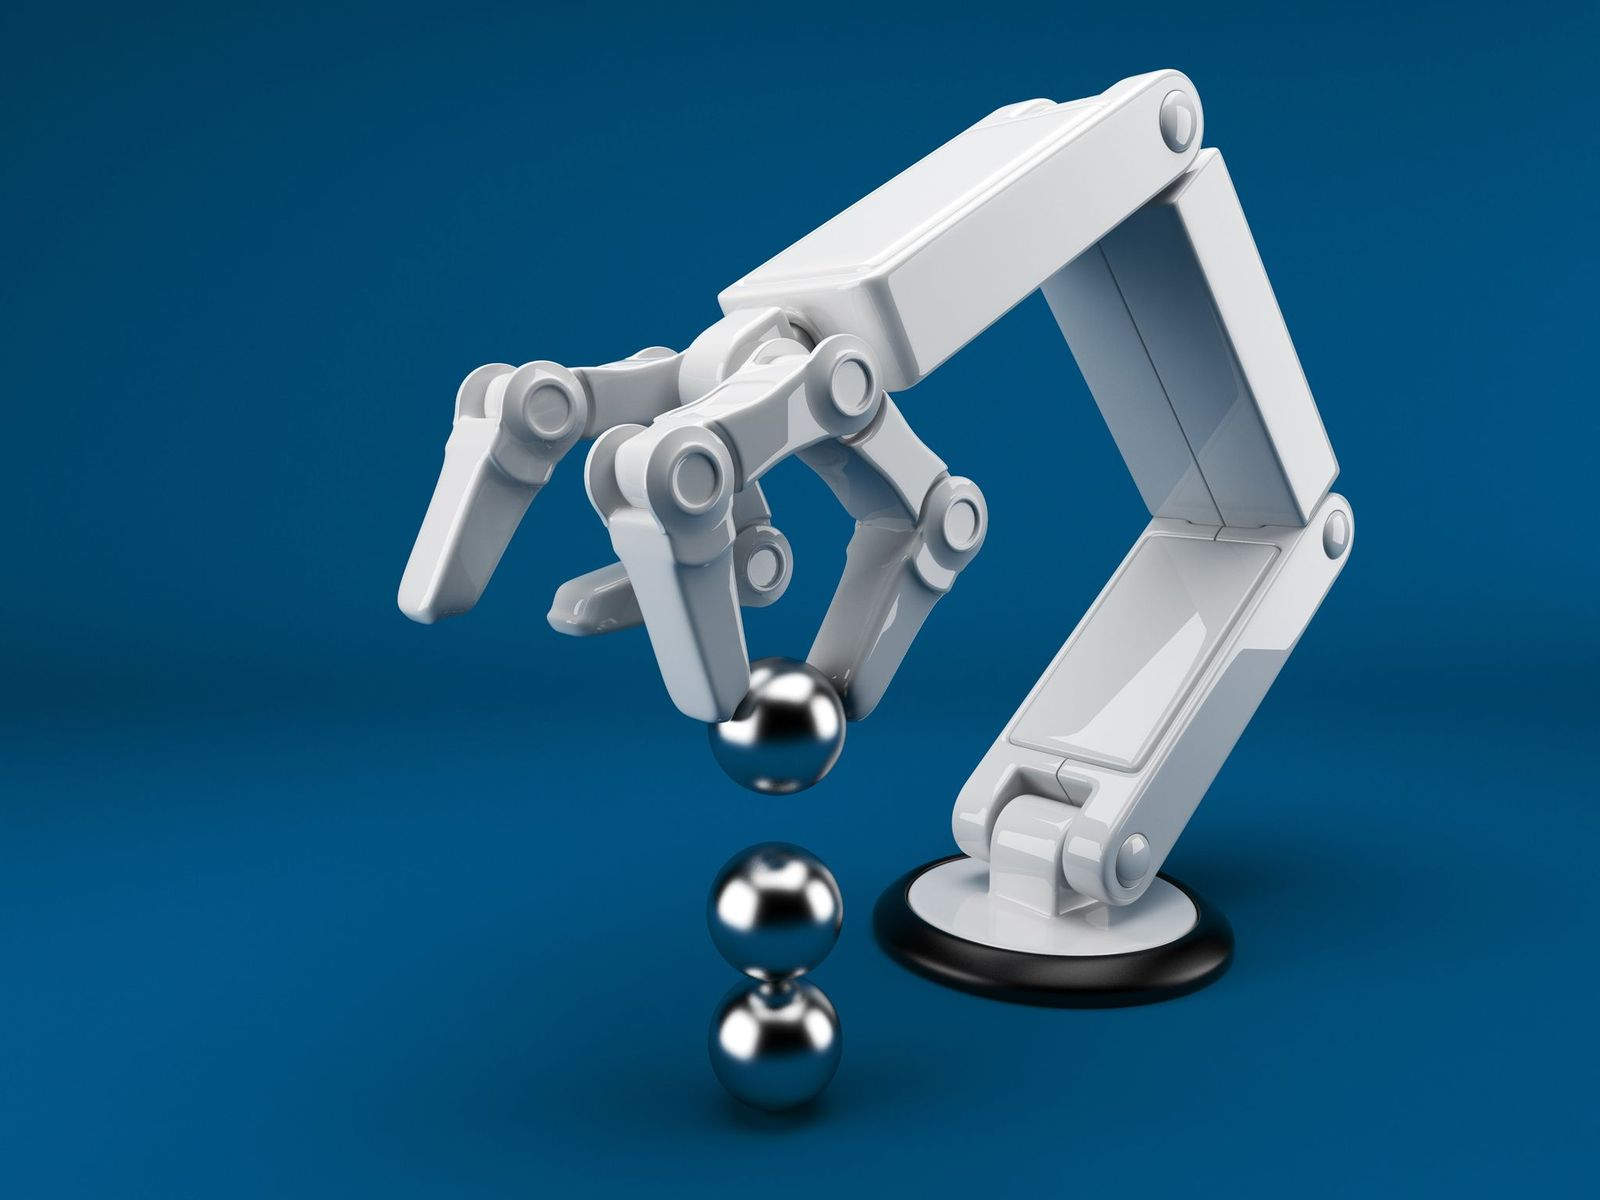 2 Reasons to Start Using Collaborative Robots in Your Production Facility